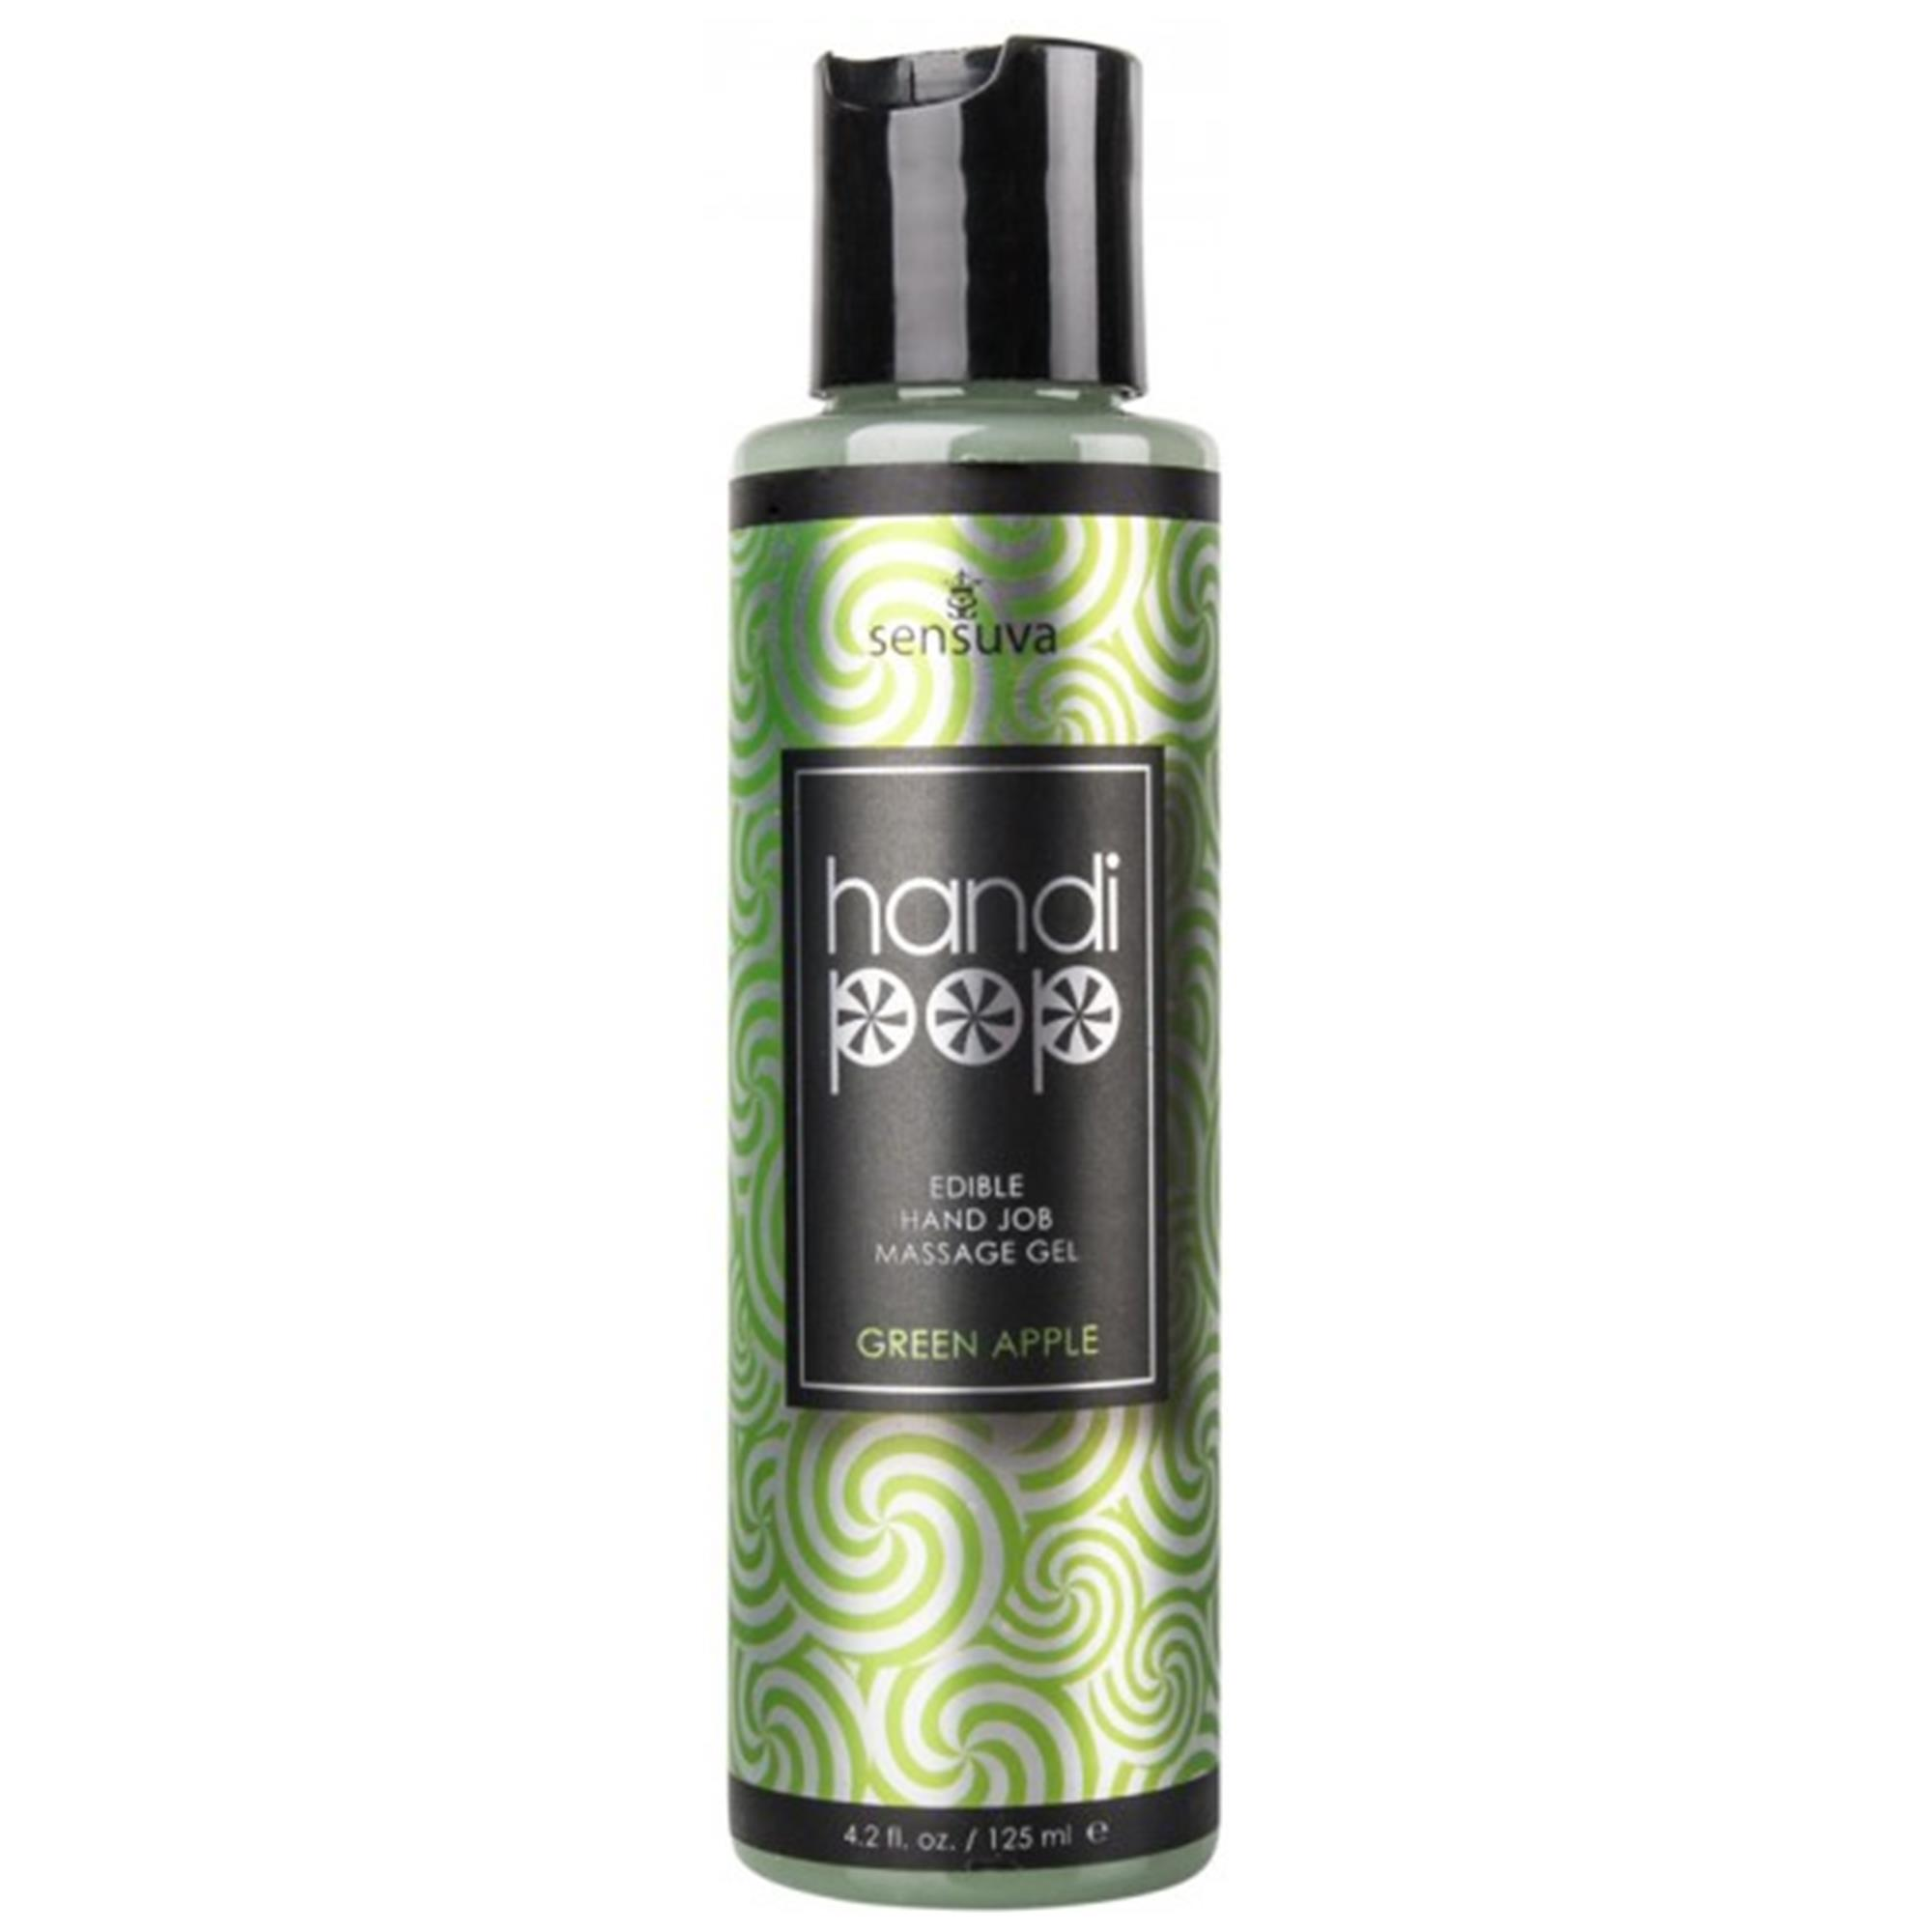 Handipop Massage Gel - Green Apple 125ml | Apotek, Massage, Massageolja | Intimast.se - Sexleksaker